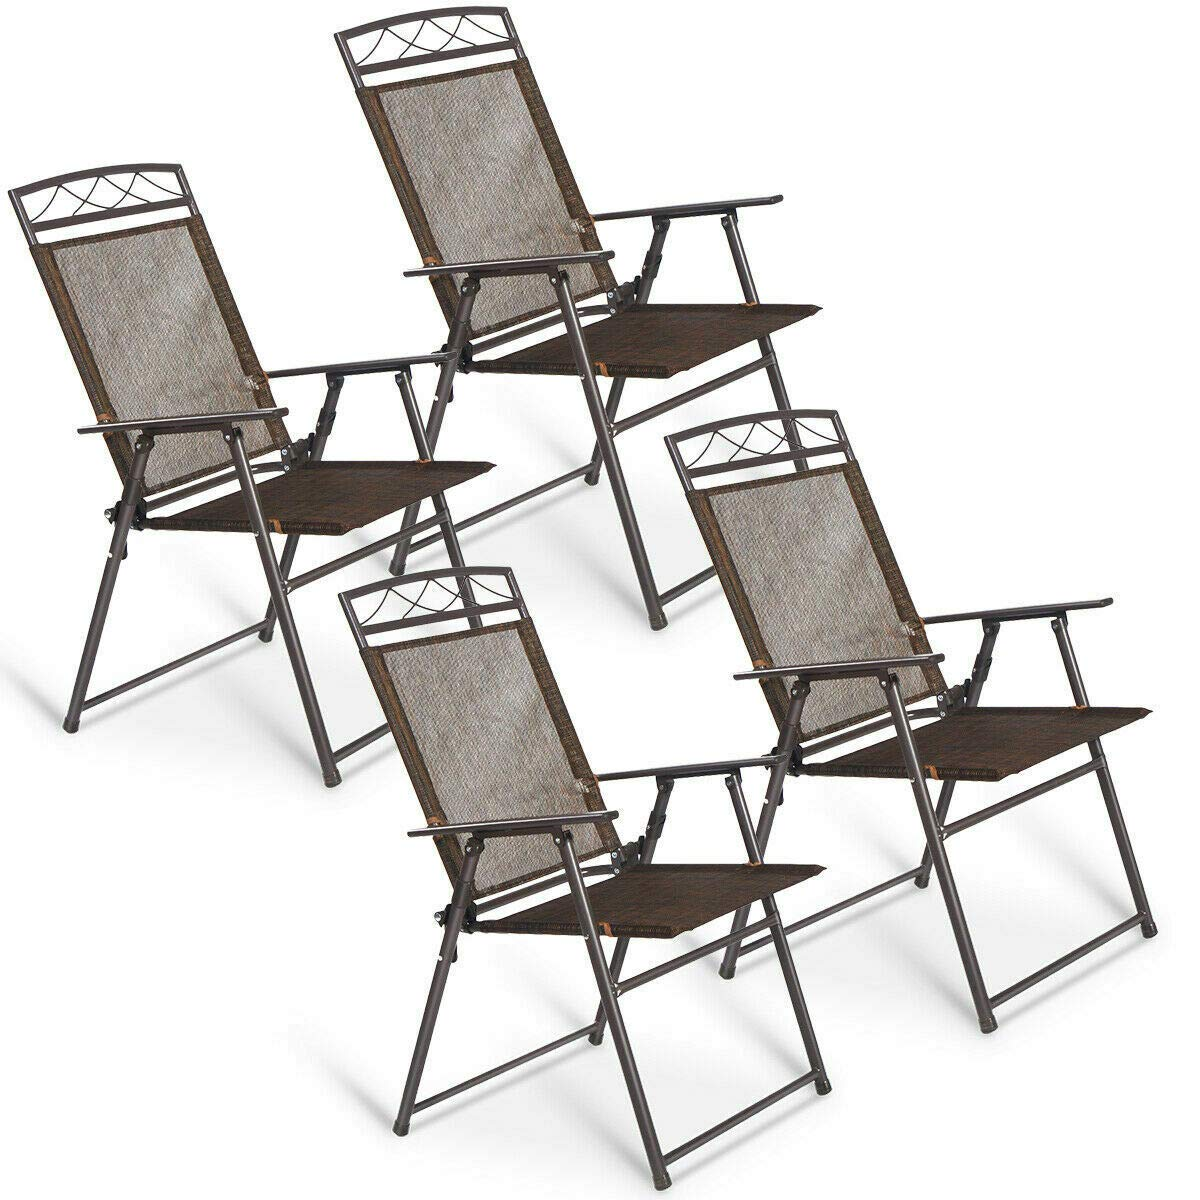 GJH One Patio Folding Sling Chairs Steel Camping Deck Garden Pool Set of 4